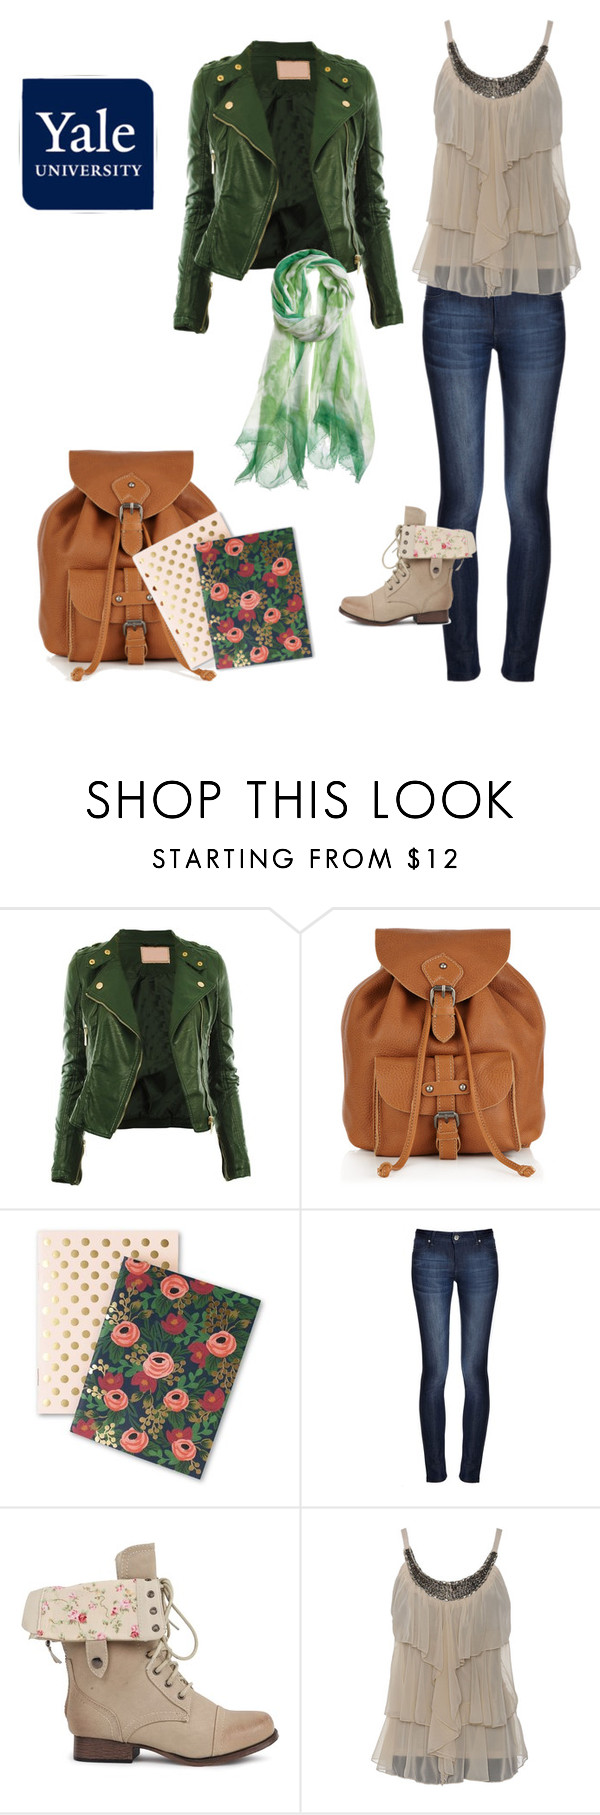 stylish for college by rory-leigh-gilmore on Polyvore featuring DL1961 Premium Denim, Jigsaw, Bajra and Rifle Paper Co